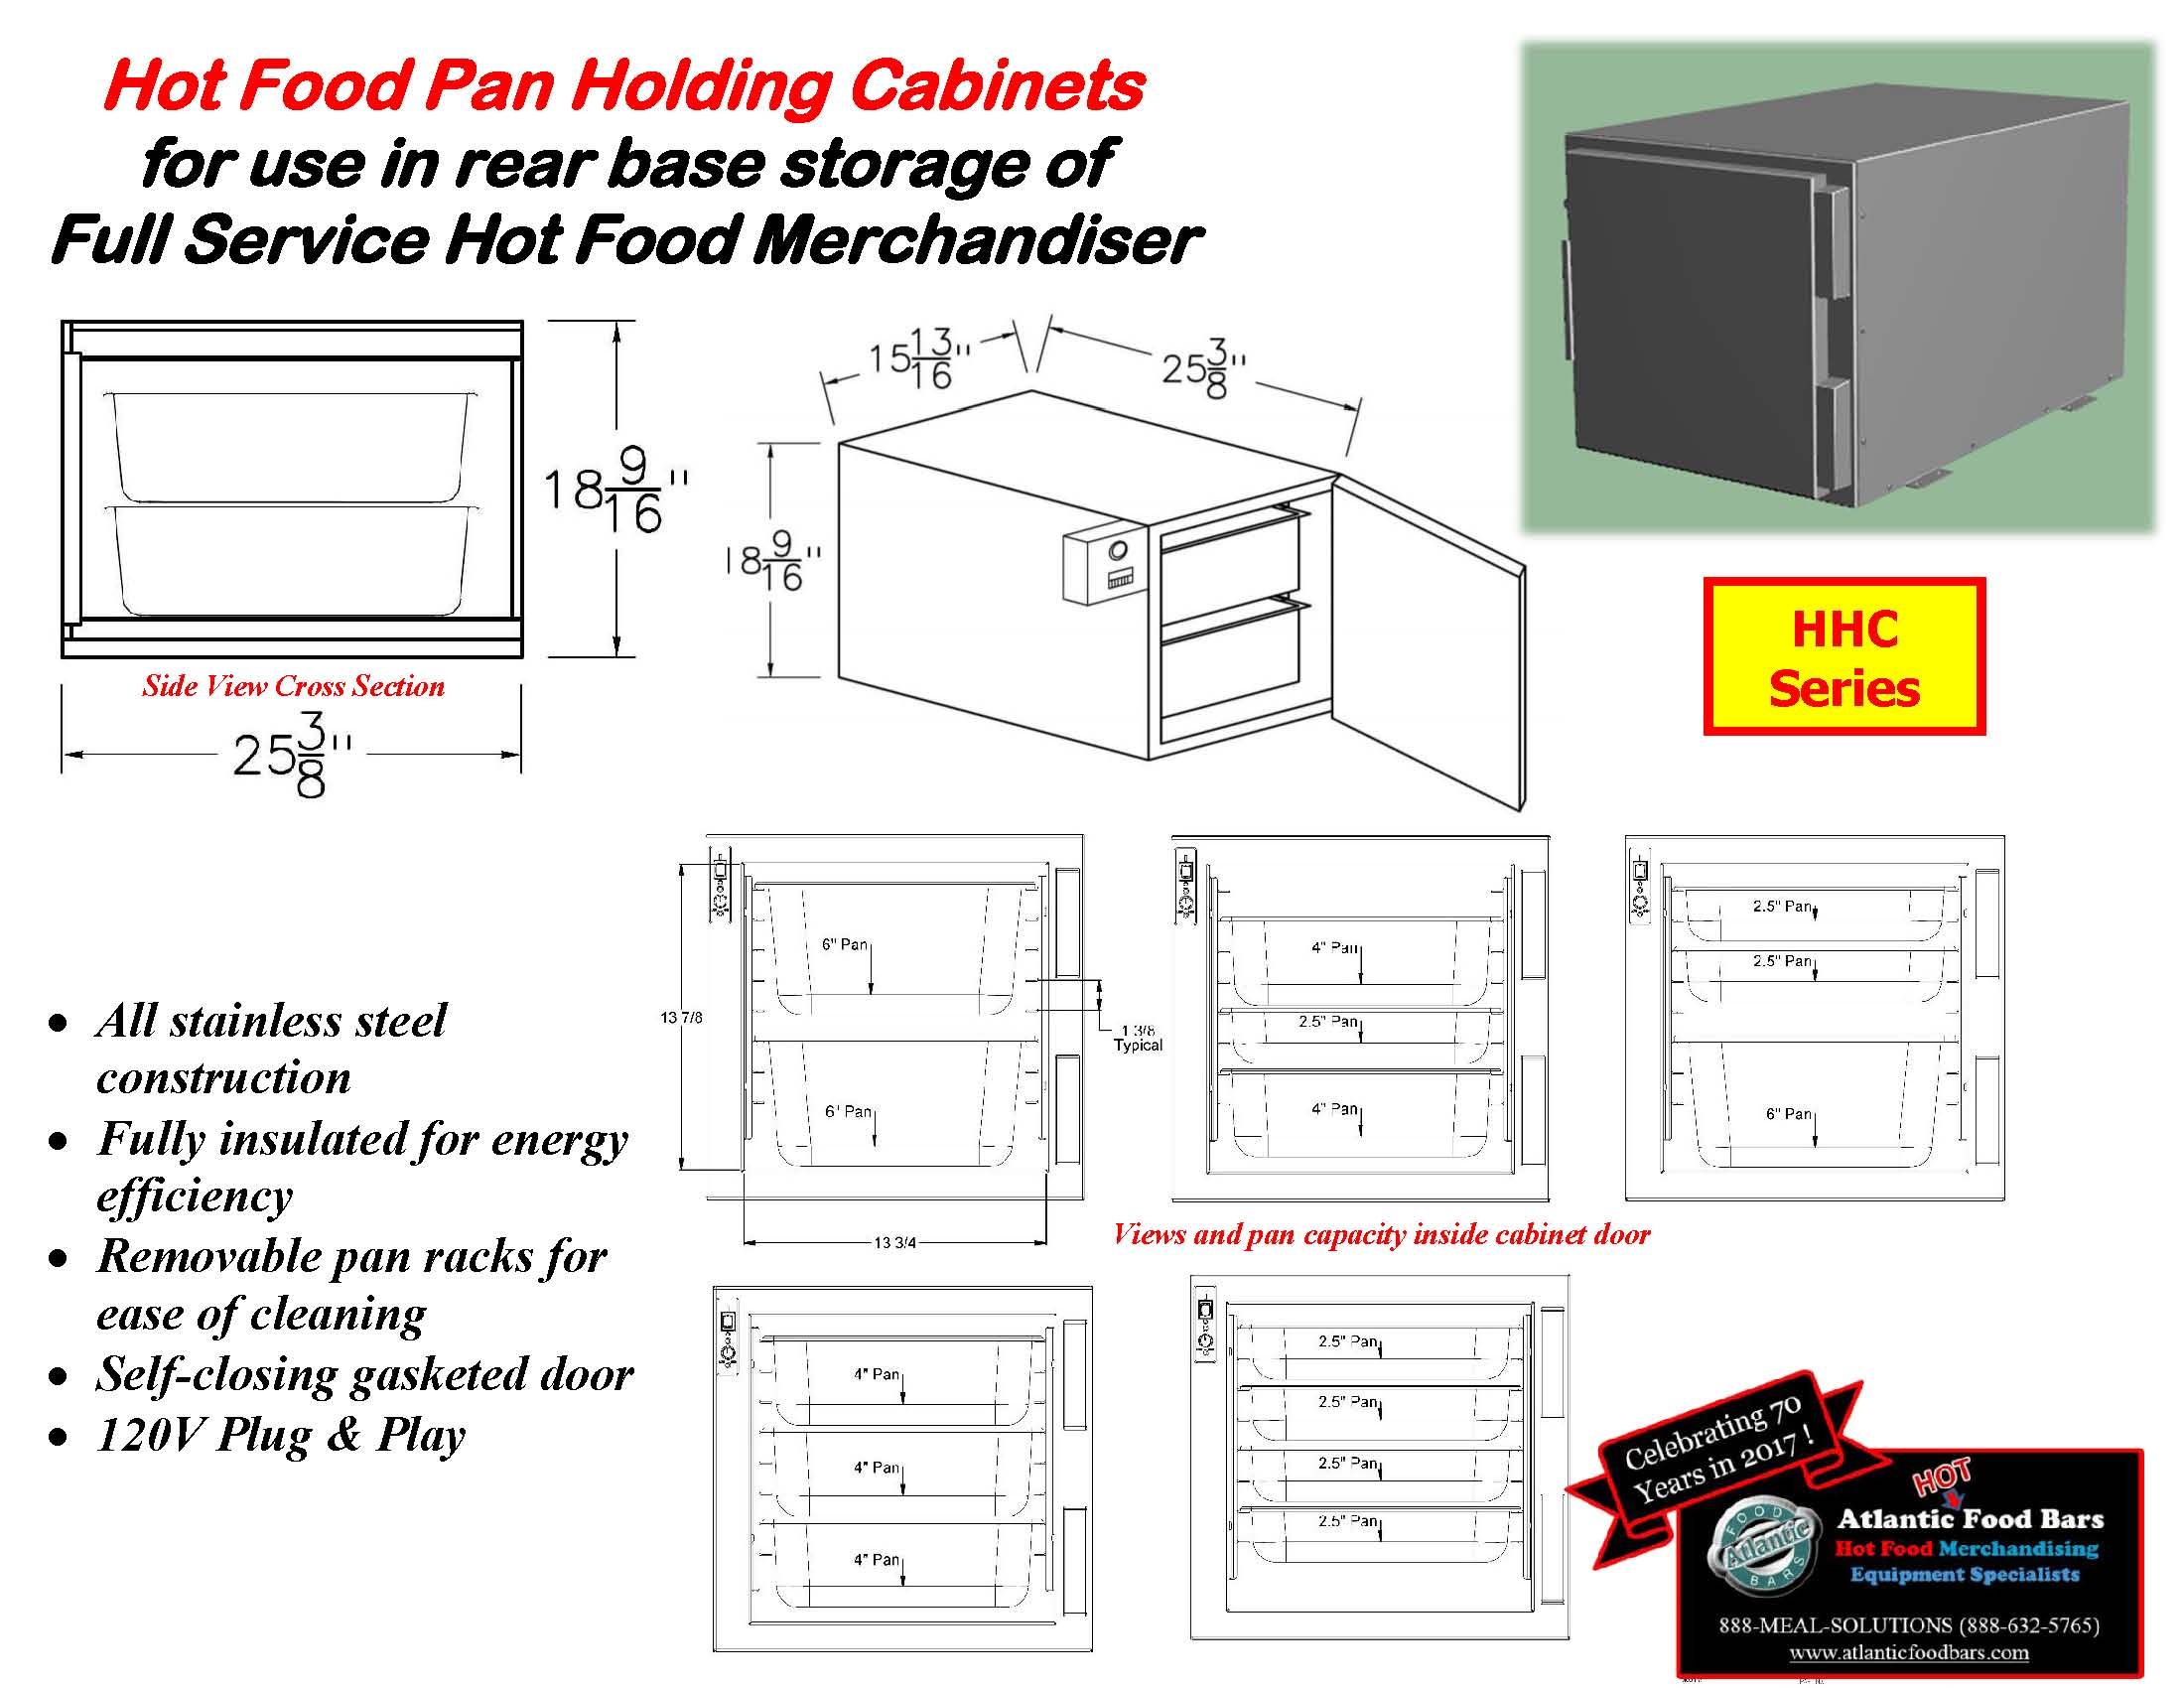 Atlantic Food Bars - Hot Food Pan Holding Cabinets for use in rear base storage of hot food merchandisers - HHC_Page_4